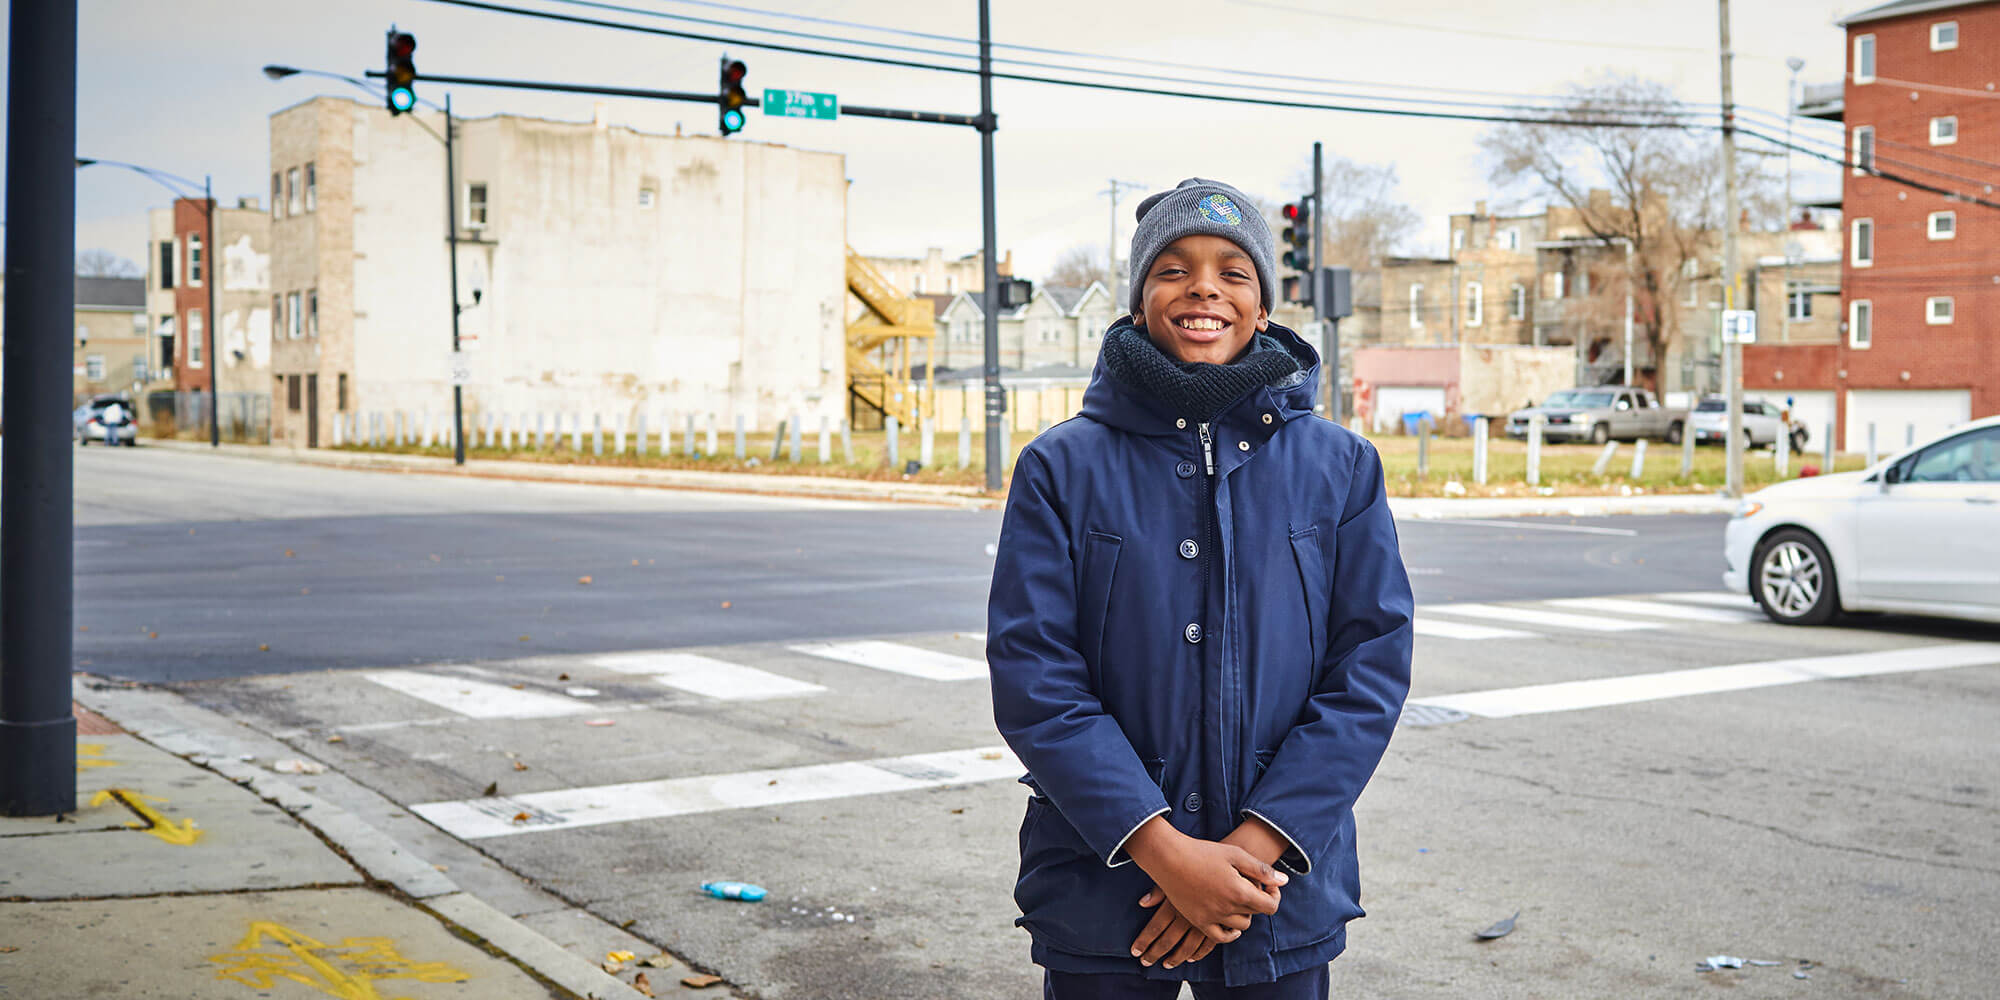 jahkil jackson standing on a street in Chicago